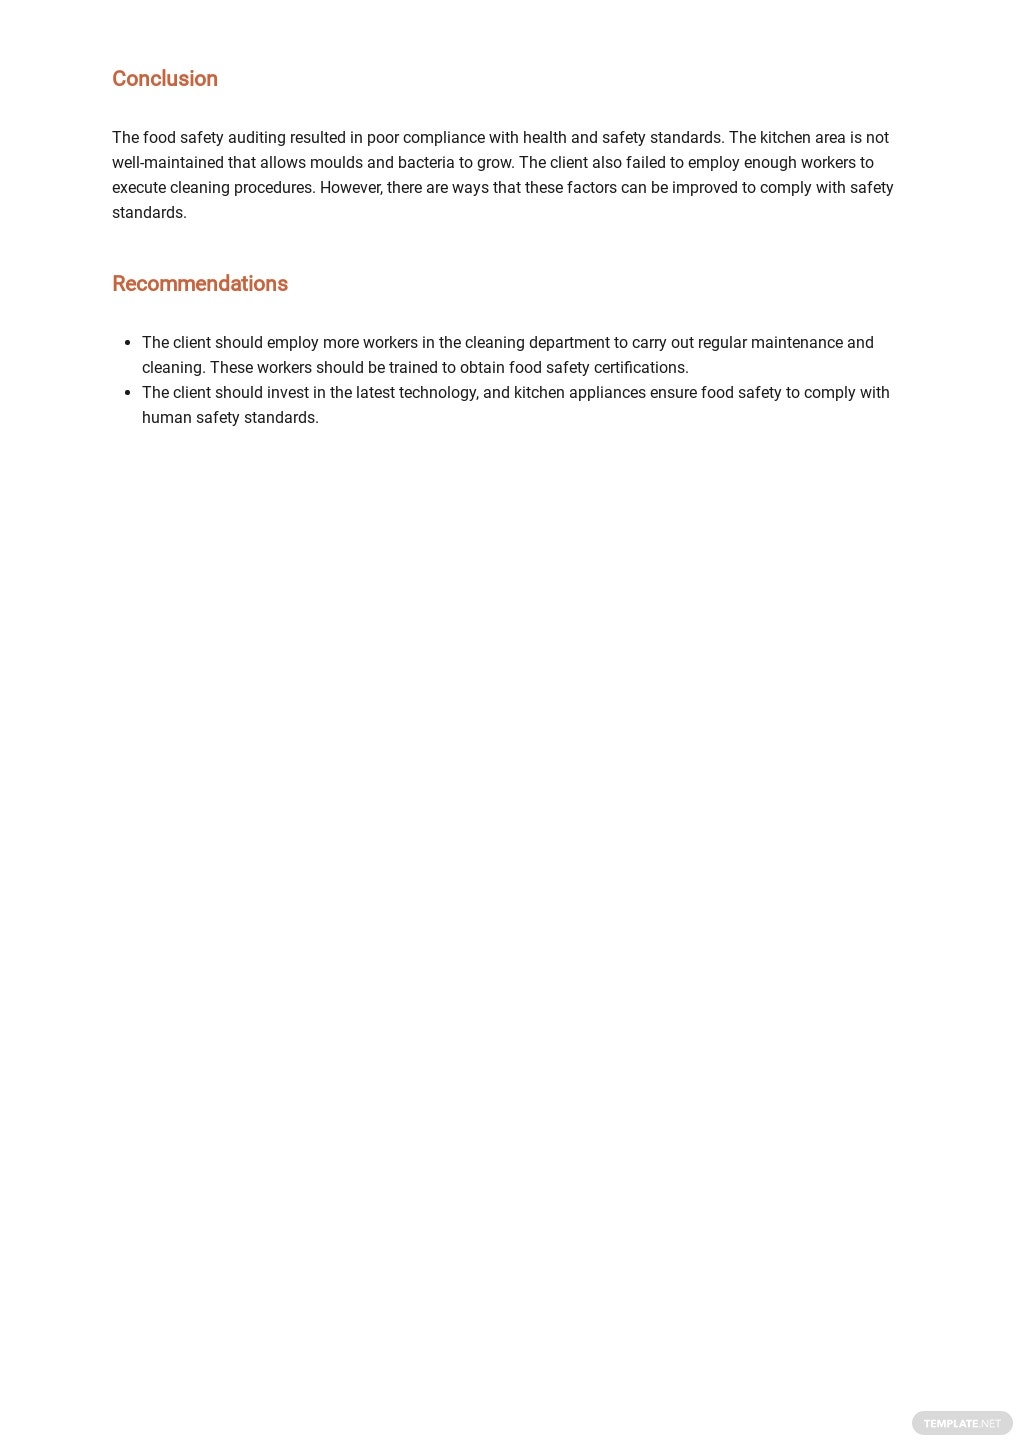 Free Food Safety Internal Audit Report Template 2.jpe